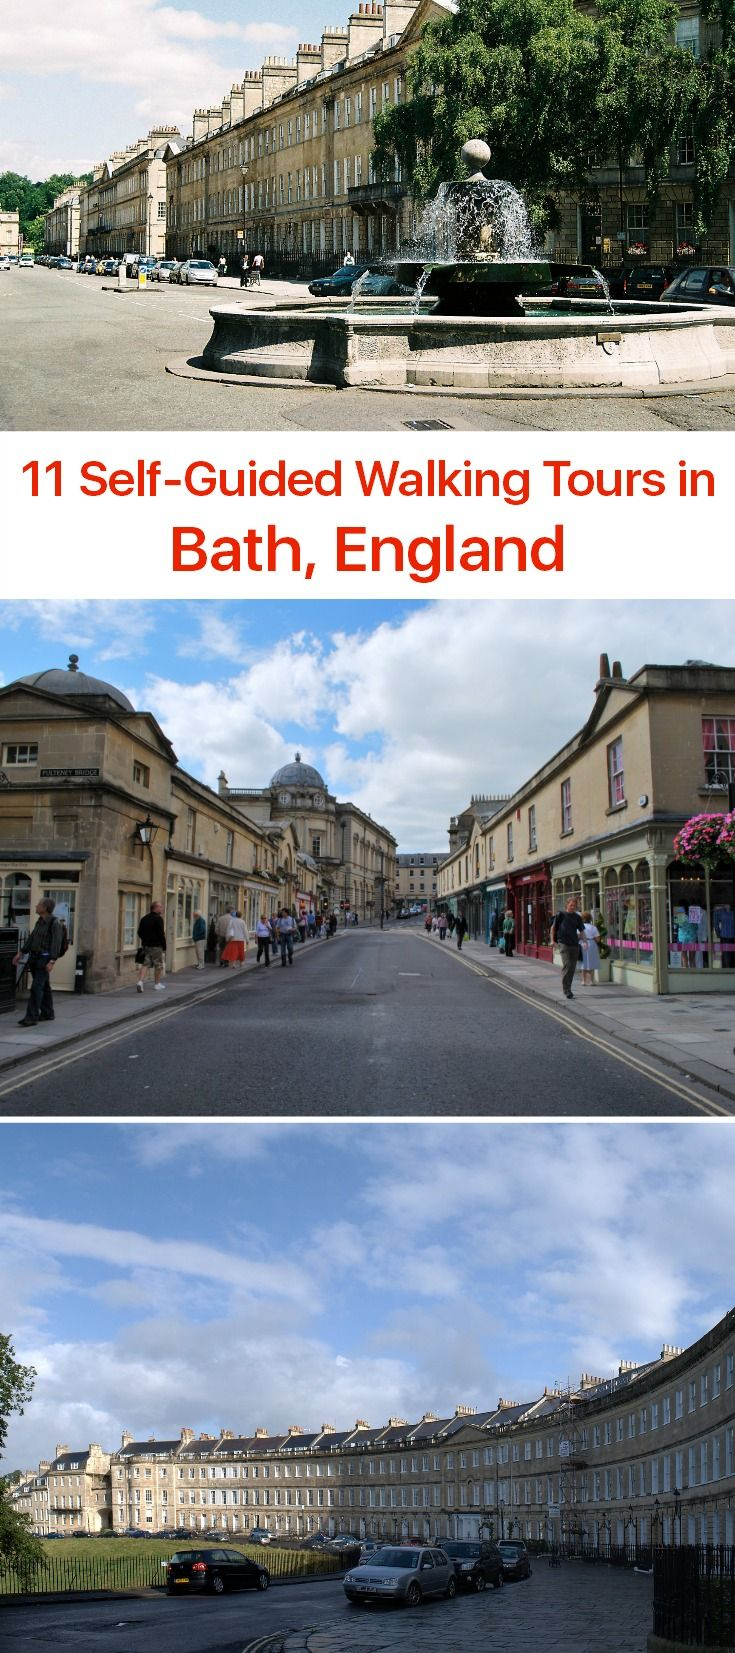 Just as the name suggests, the English town of Bath is mainly about bathing - Thermae Bath Spa is the only place in Britain where one can fully enjoy naturally hot spa water in original Roman setting, complete with befitting statues and a temple. Another major attraction Bath is famous for is the 18th-century Georgian architecture.